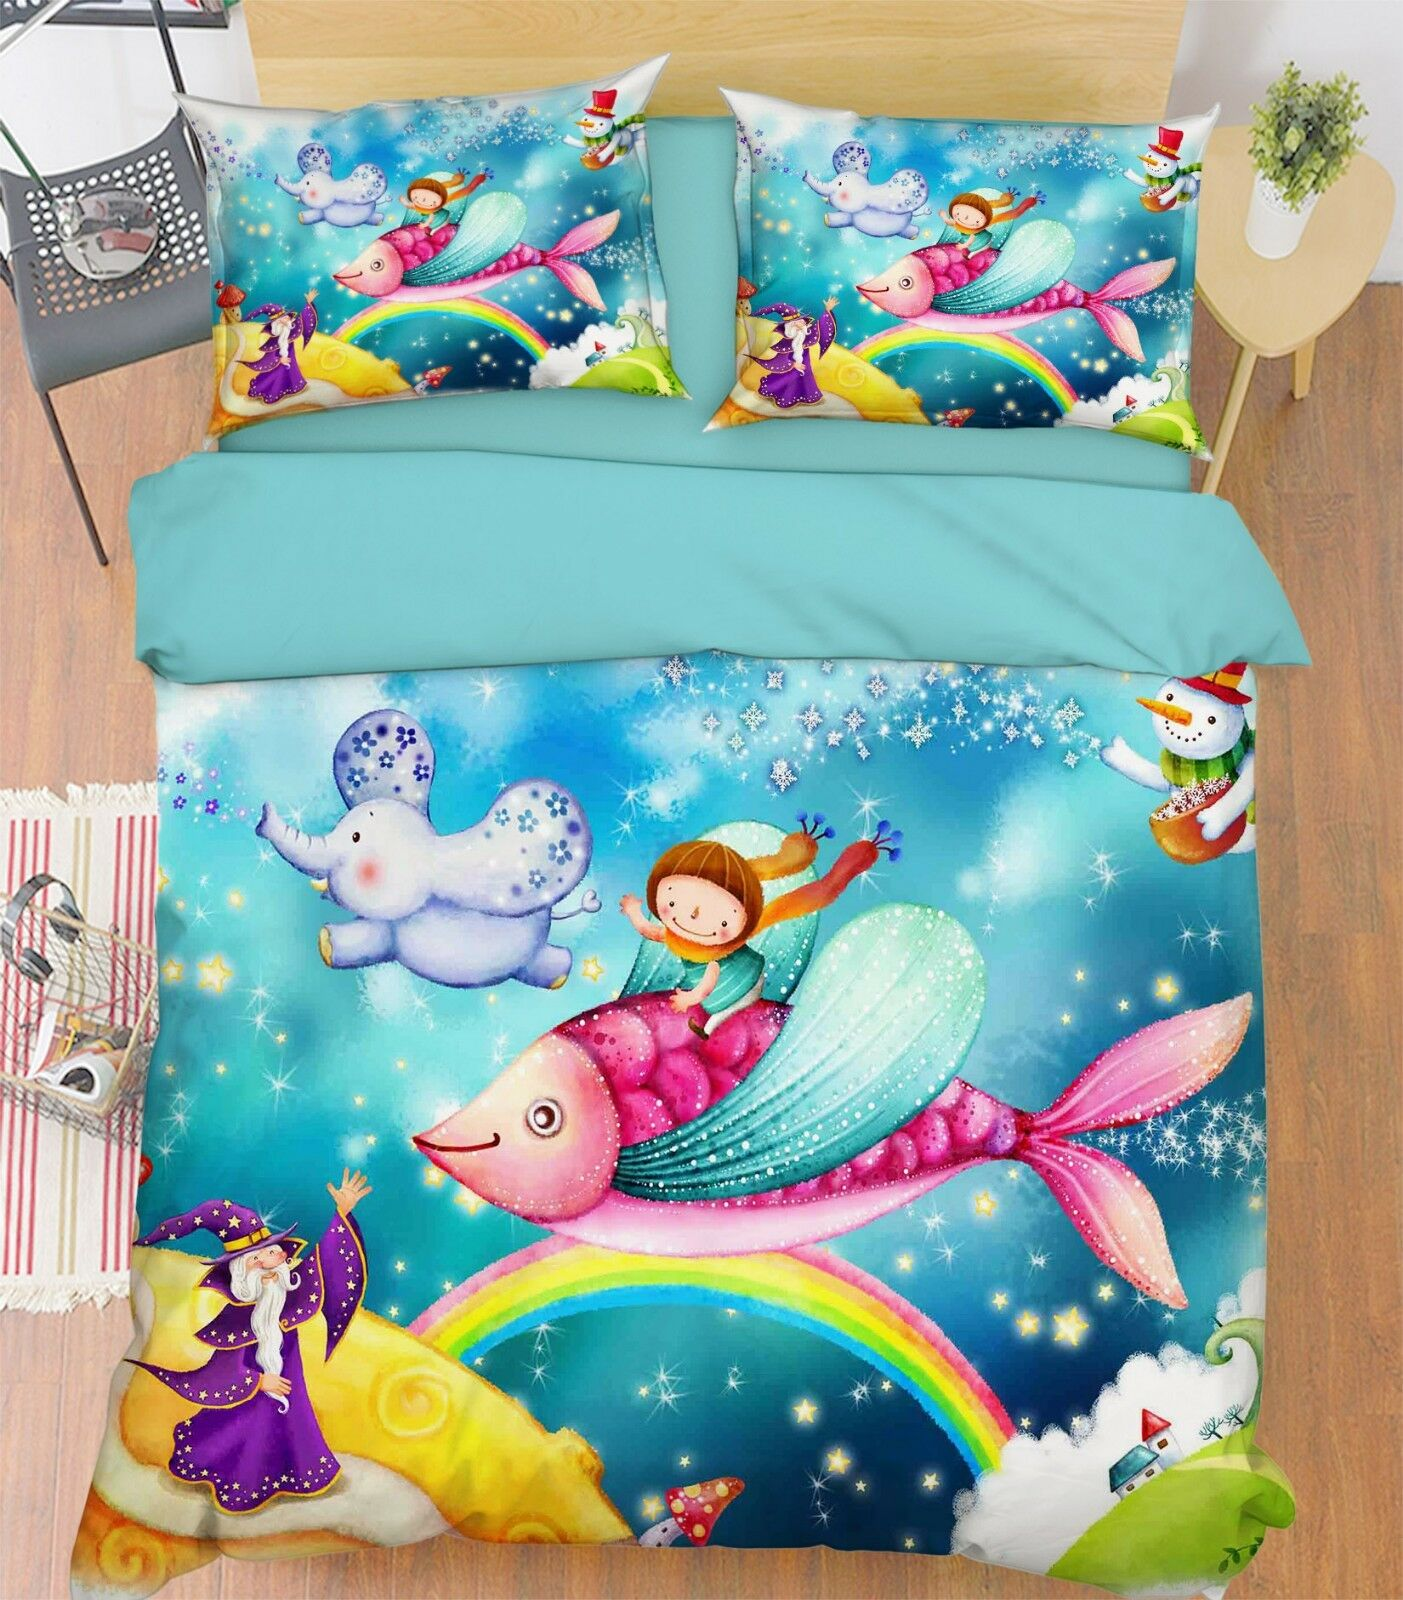 3d Traumraum 302 Bett Kissenbezüge Steppen Duvet Decken Set Single Königin  De